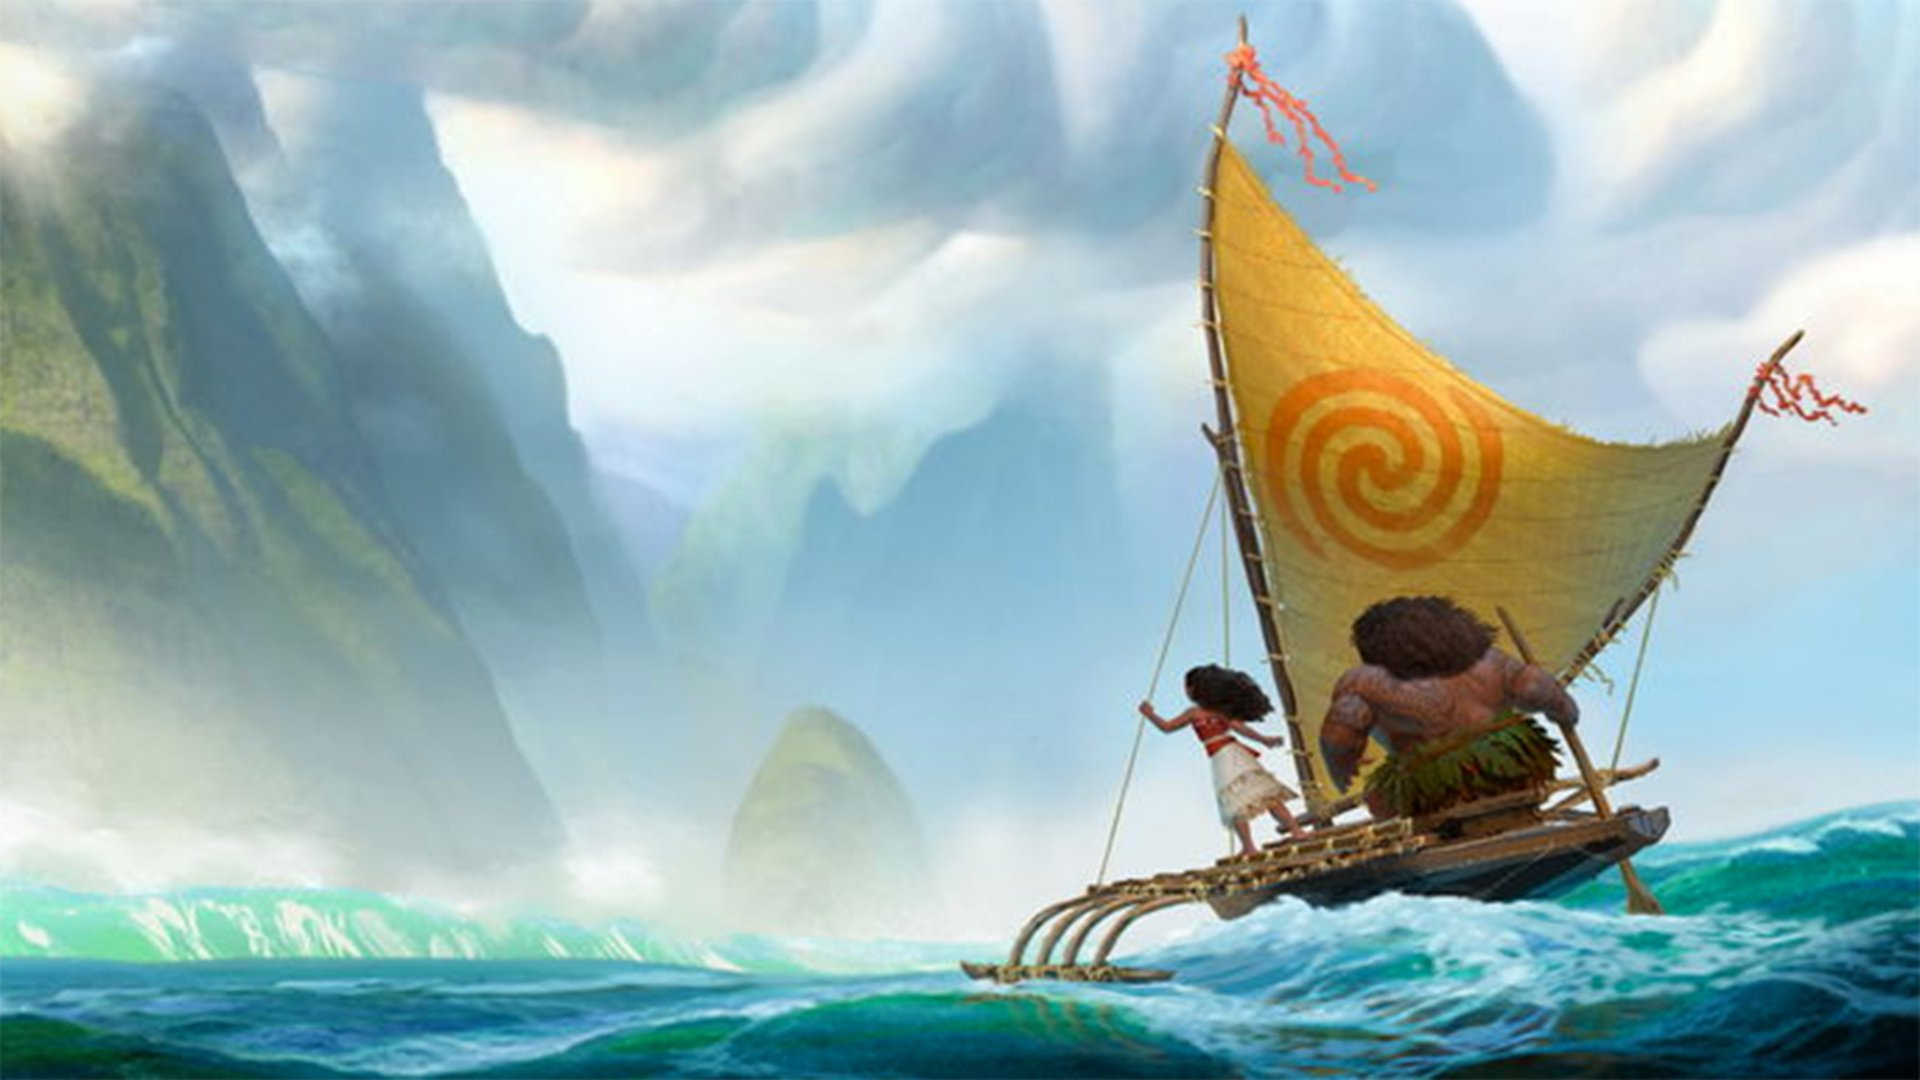 Moana Full hd wallpapers